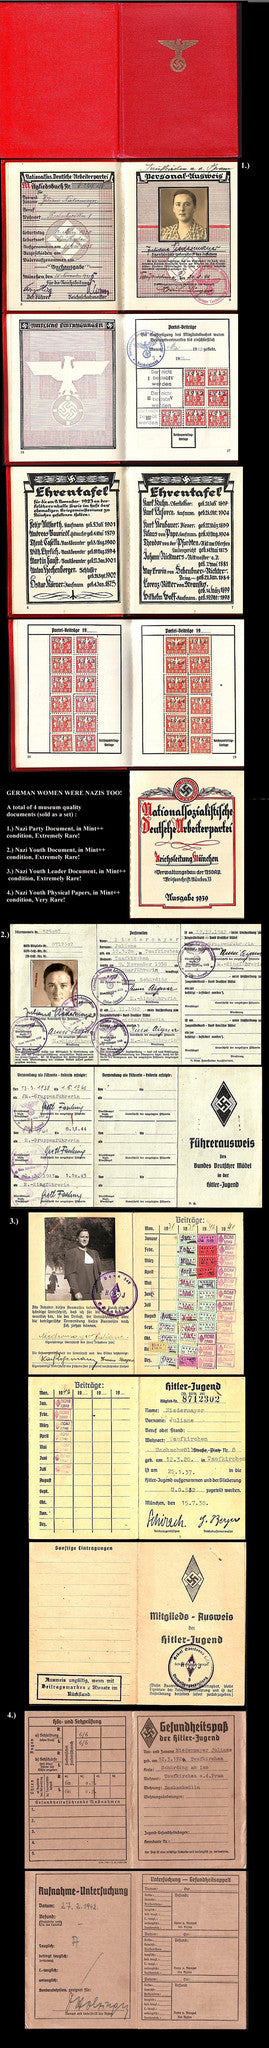 Nazi Party ID book and Set of 3 Hitler Youth Documents - J.V. Bond Company